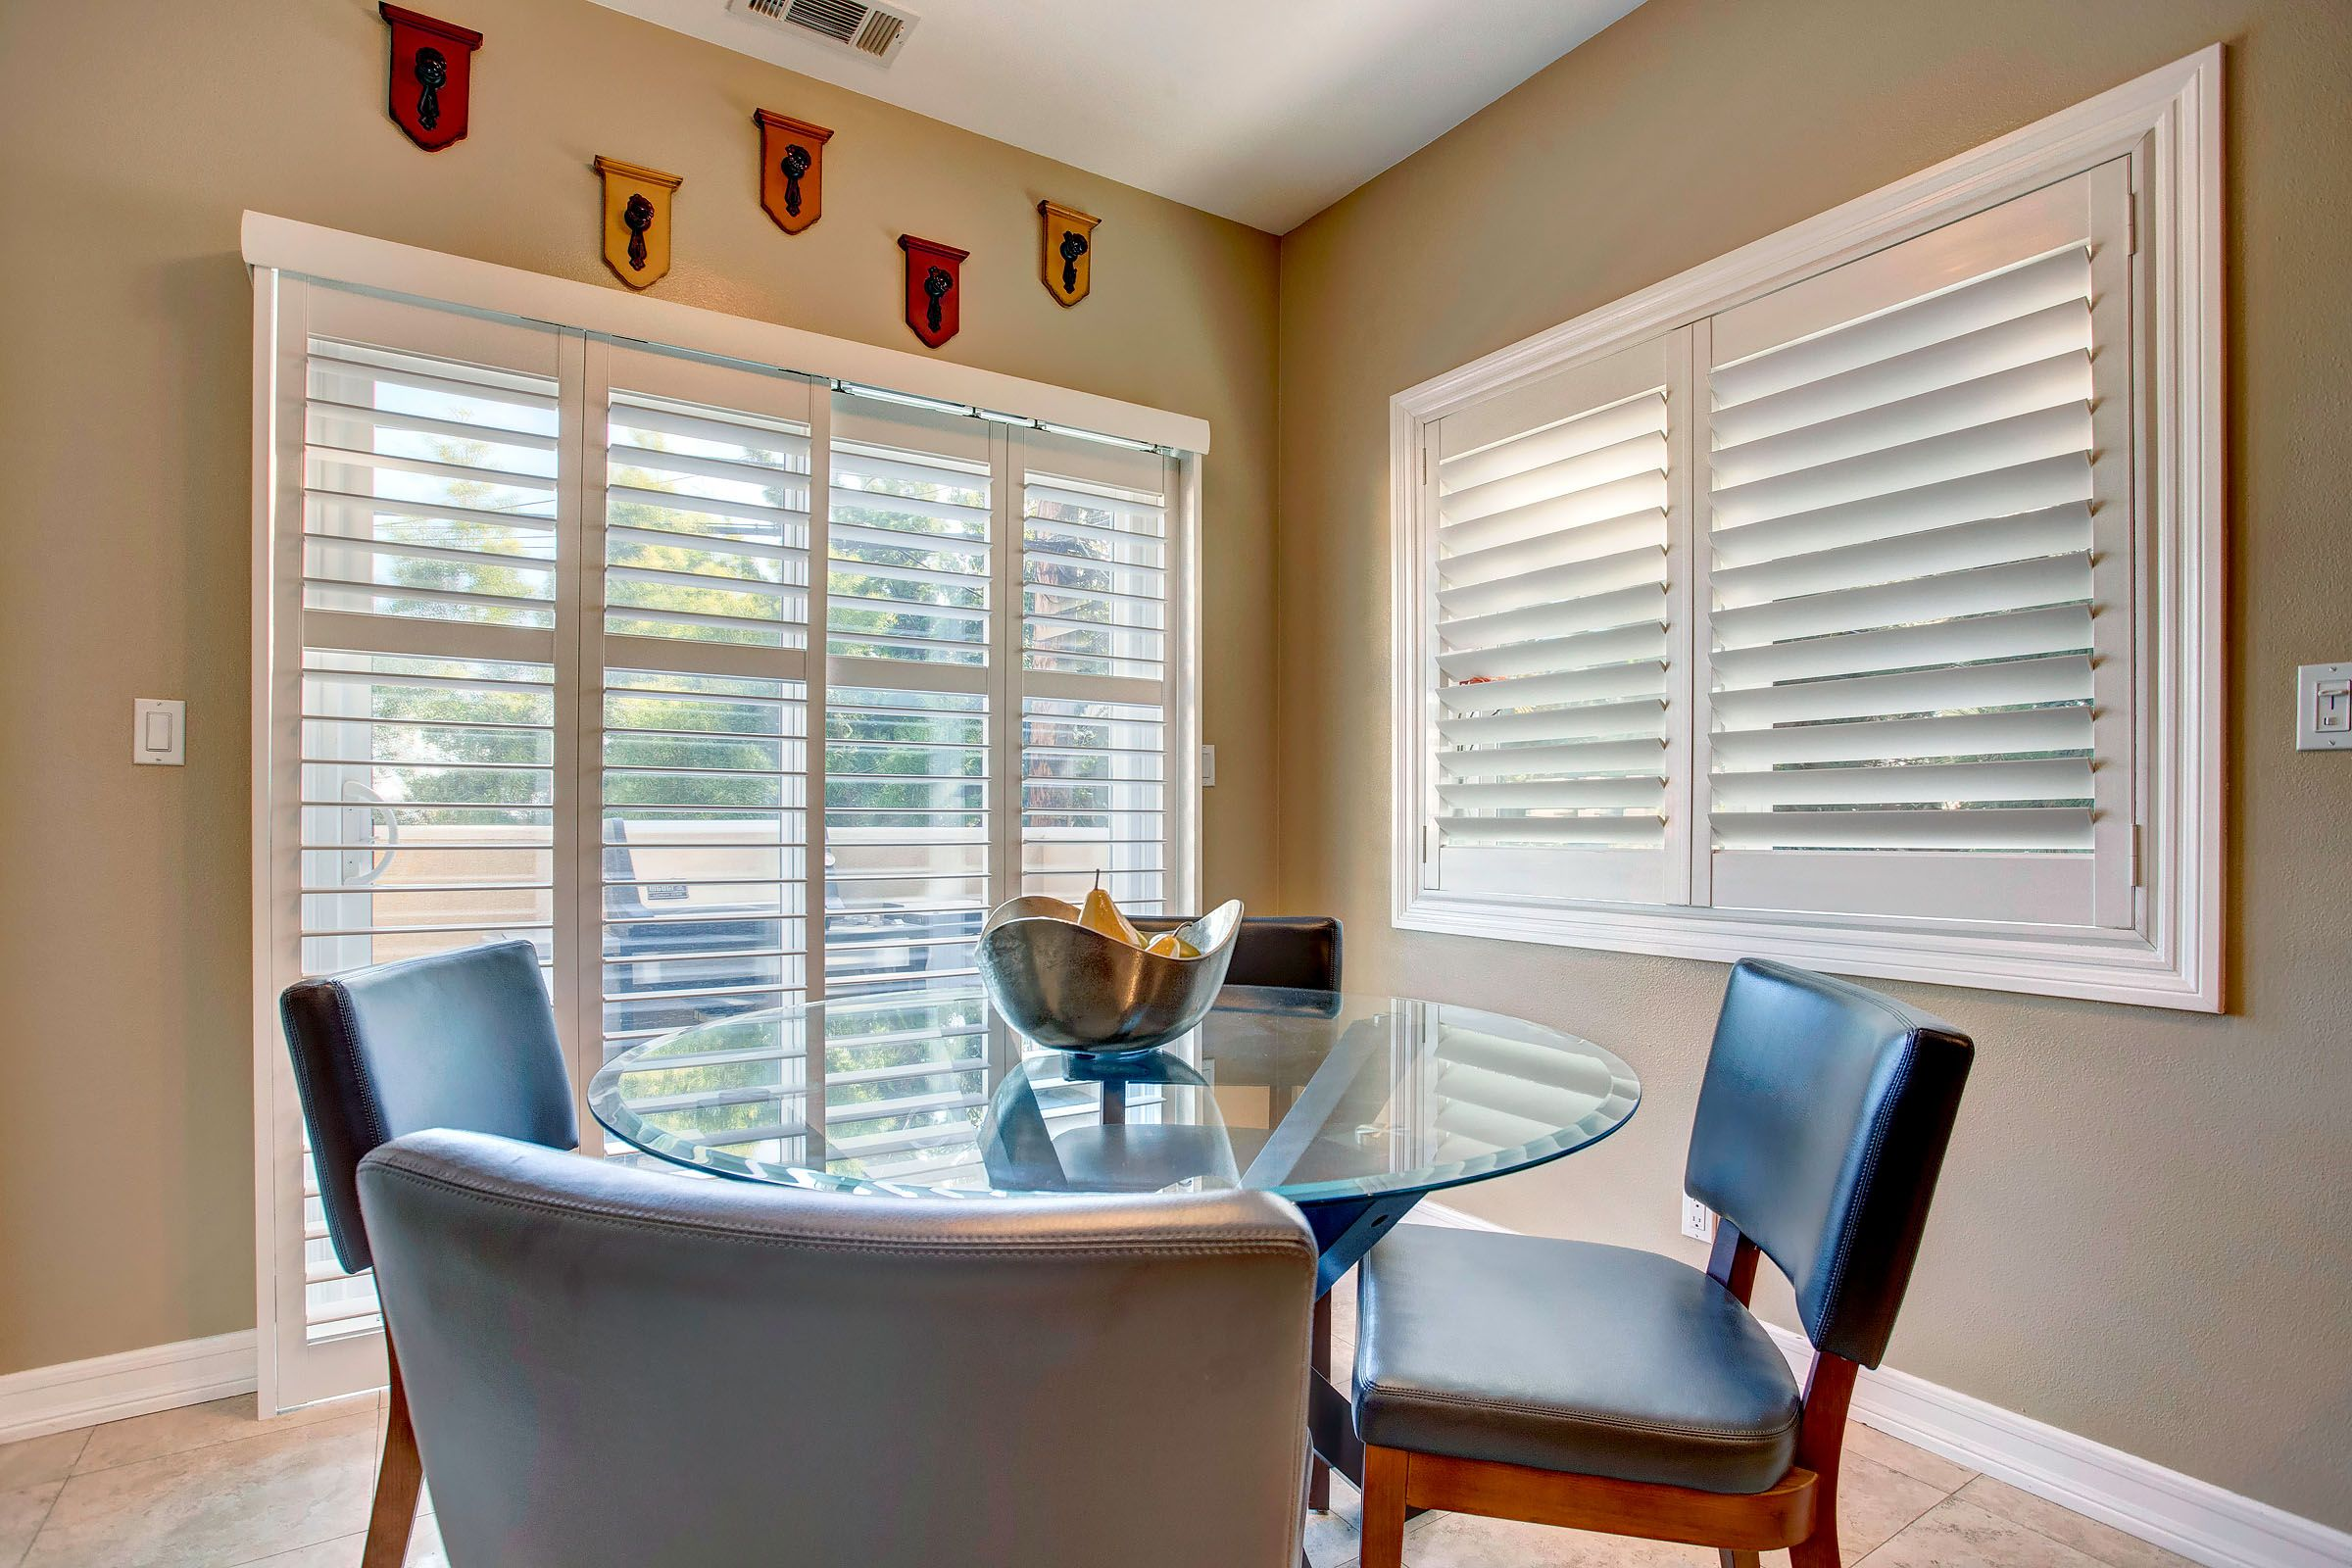 step budget blind chicago myhomedesign cleaning size a vancouver clean and custom window full of blinds win tag wa